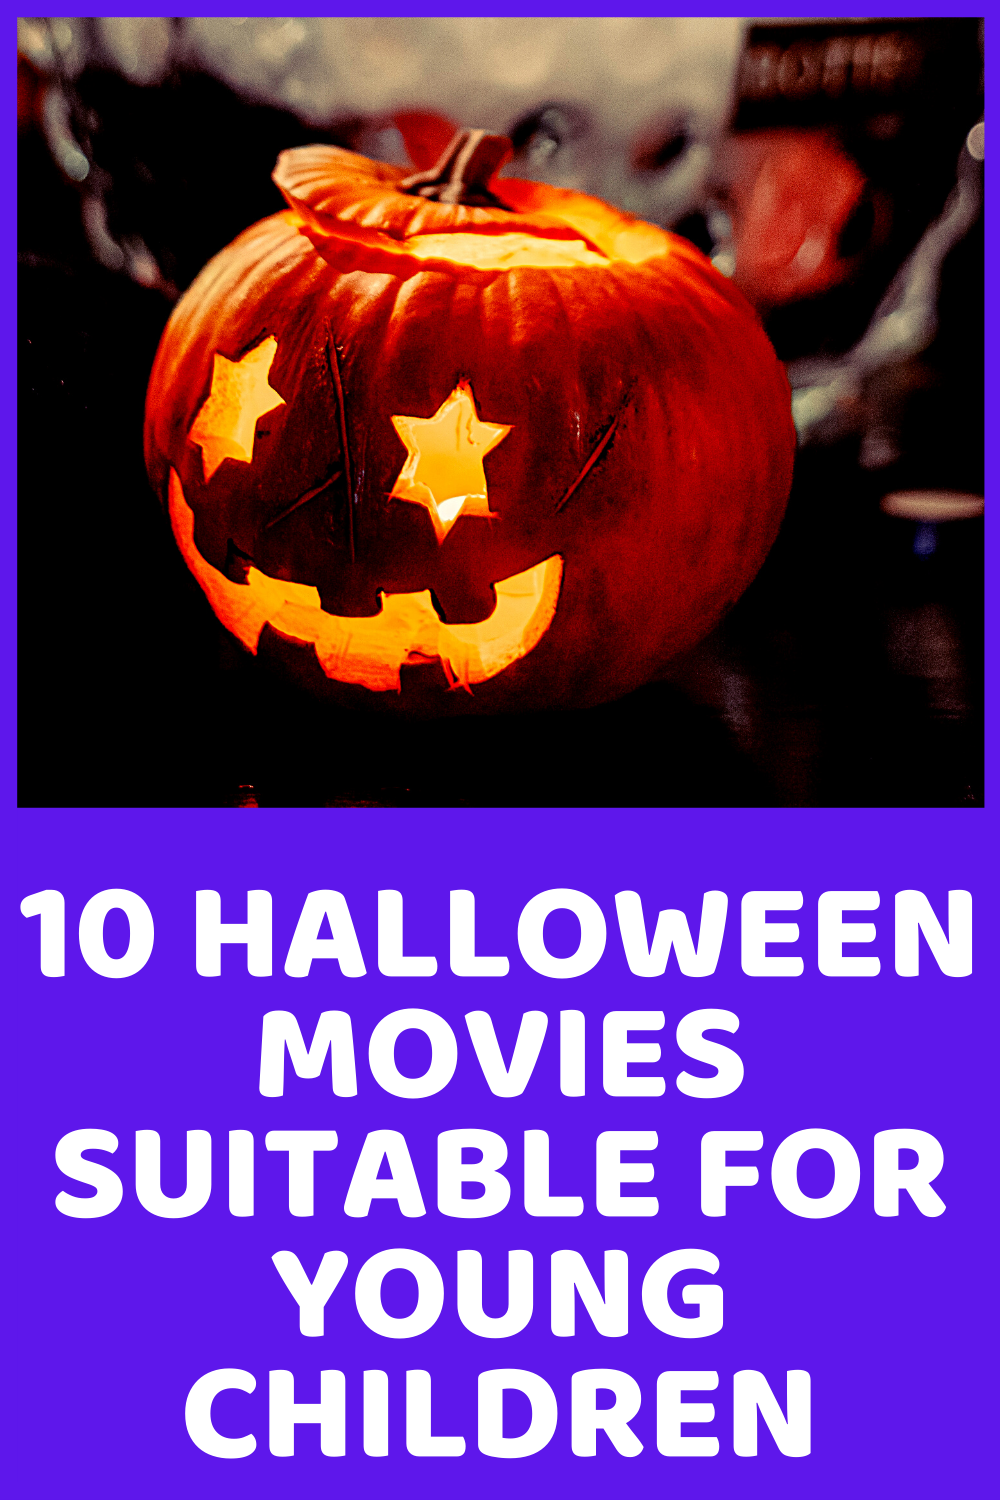 10 Halloween Movies Suitable For Young Children